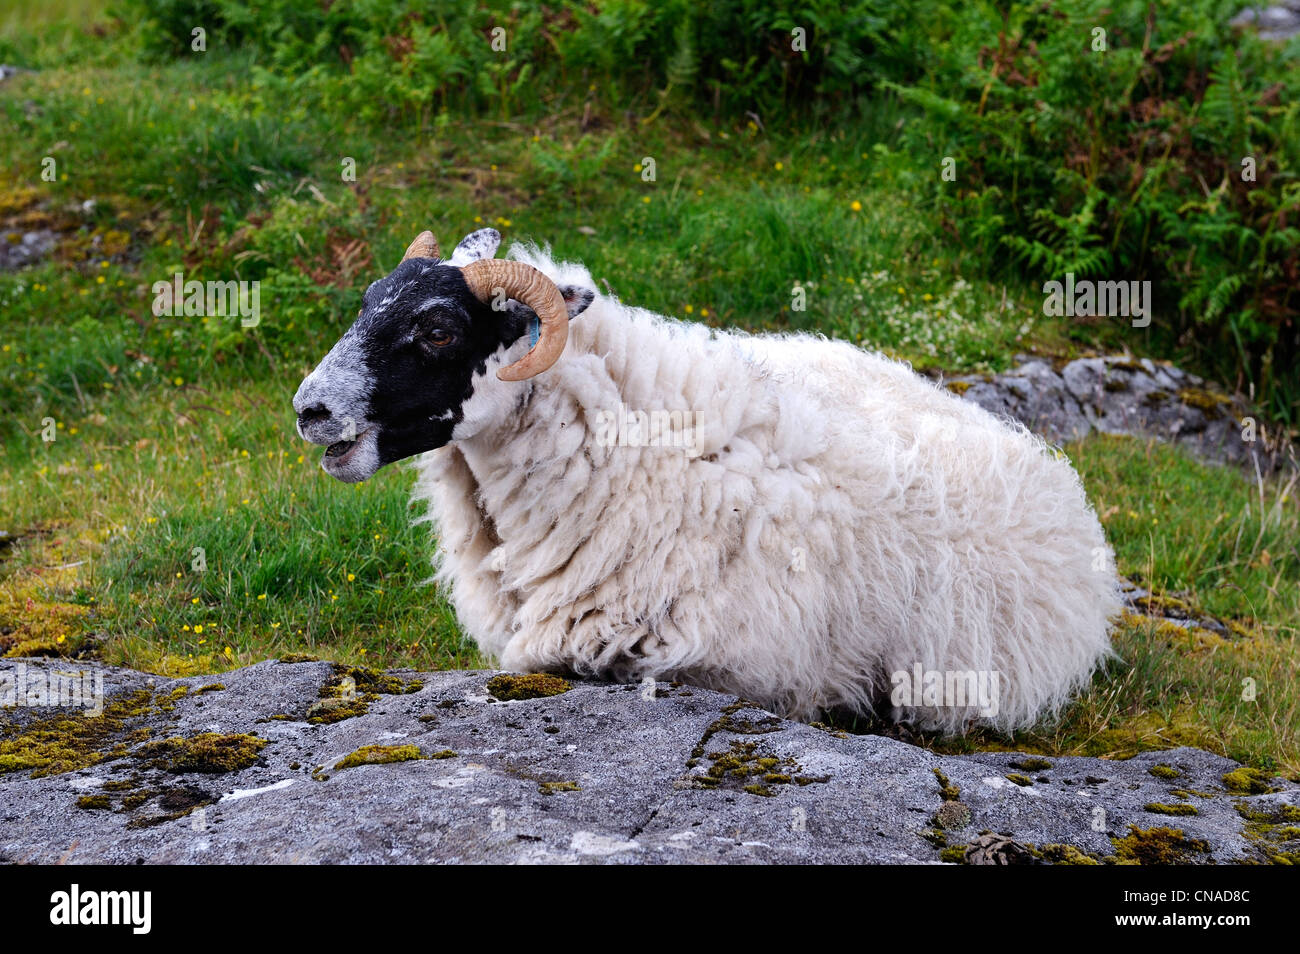 United Kingdom, Scotland, Highland, Inner Hebrides, Isle of Mull, ram - Stock Image